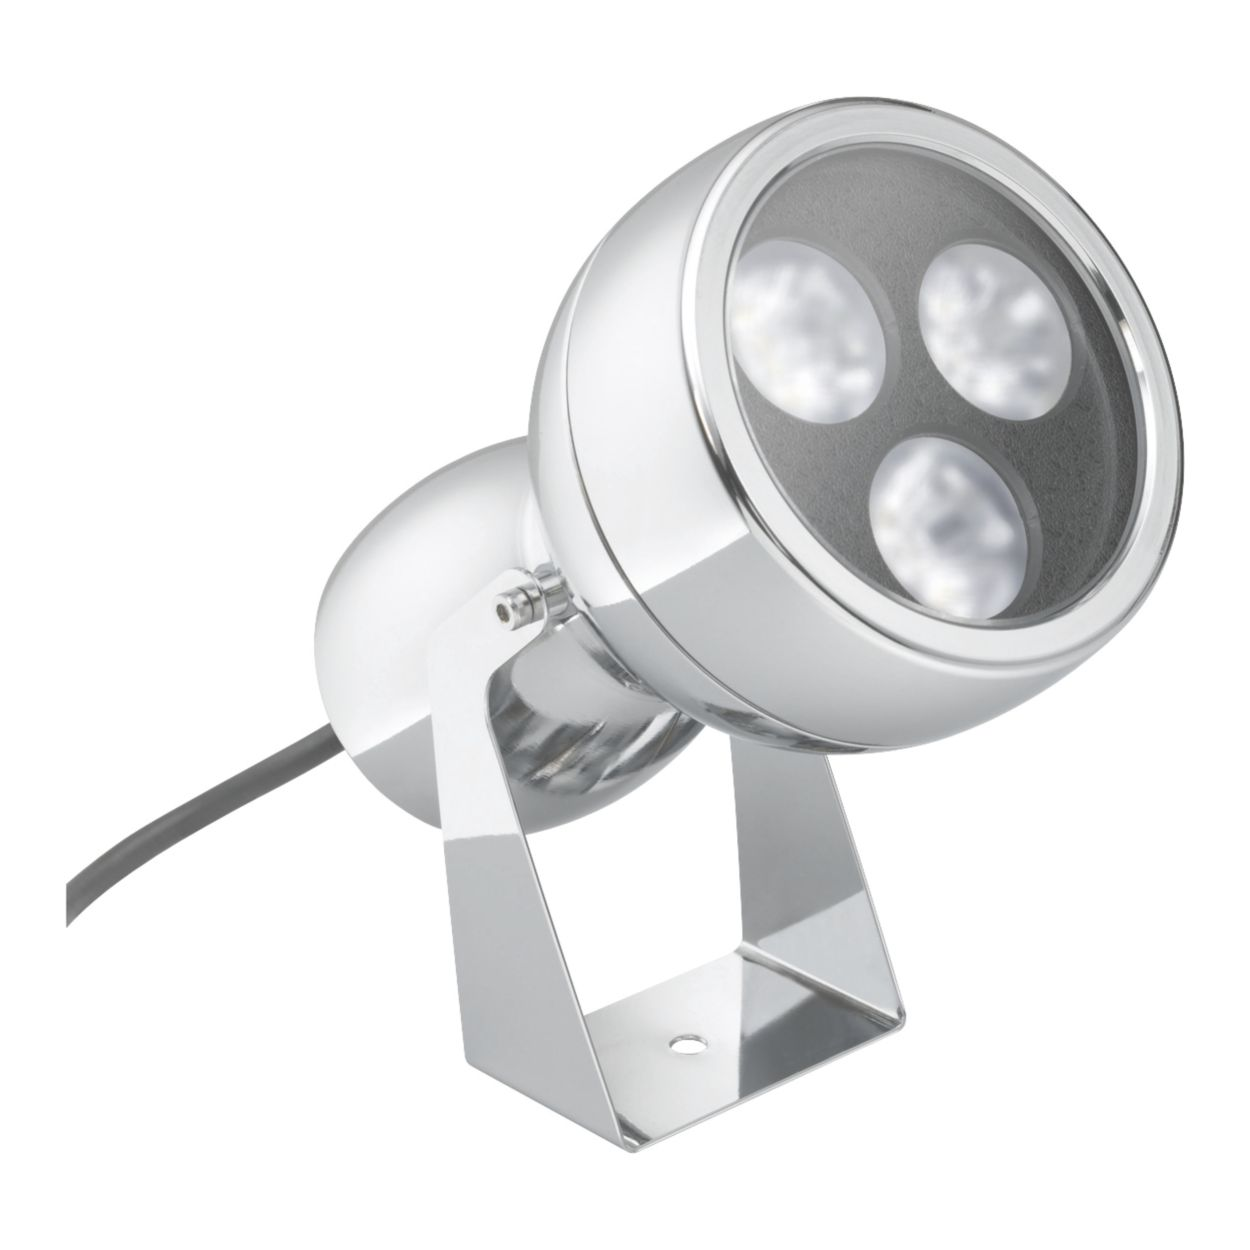 AmphiLux surface mounted – light up your outdoor social areas